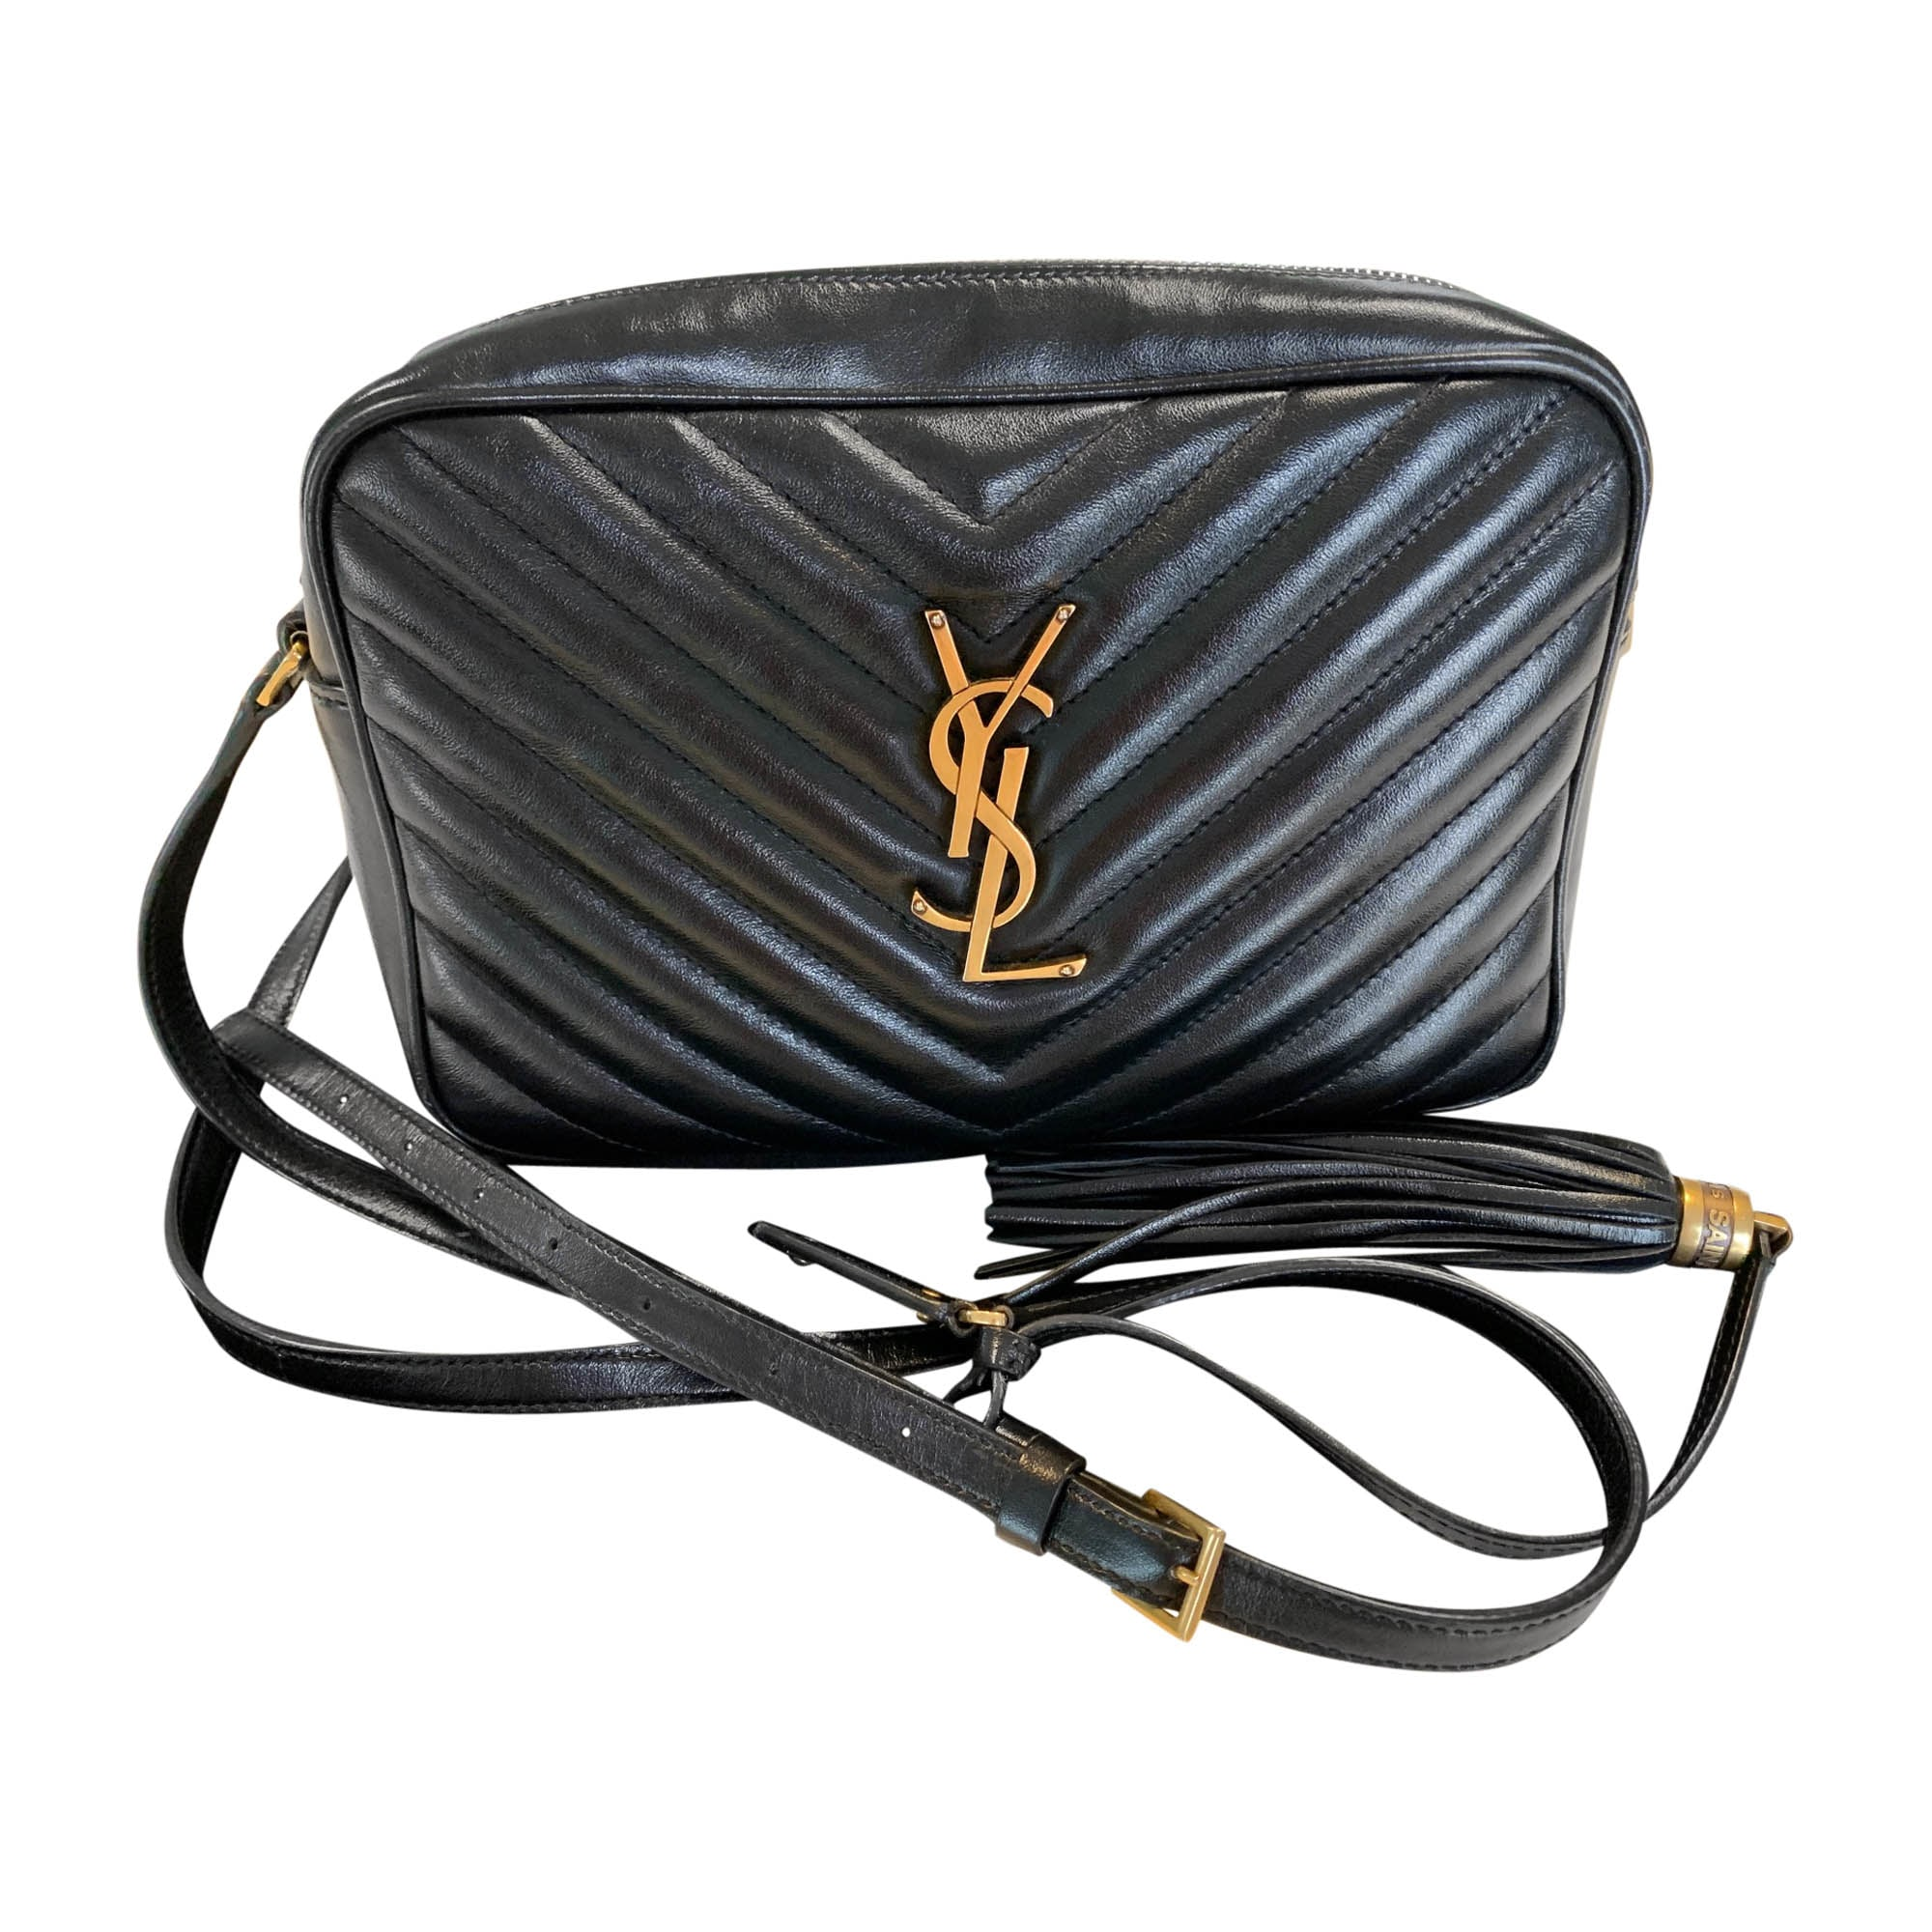 Borsa a tracolla in pelle YVES SAINT LAURENT Nero